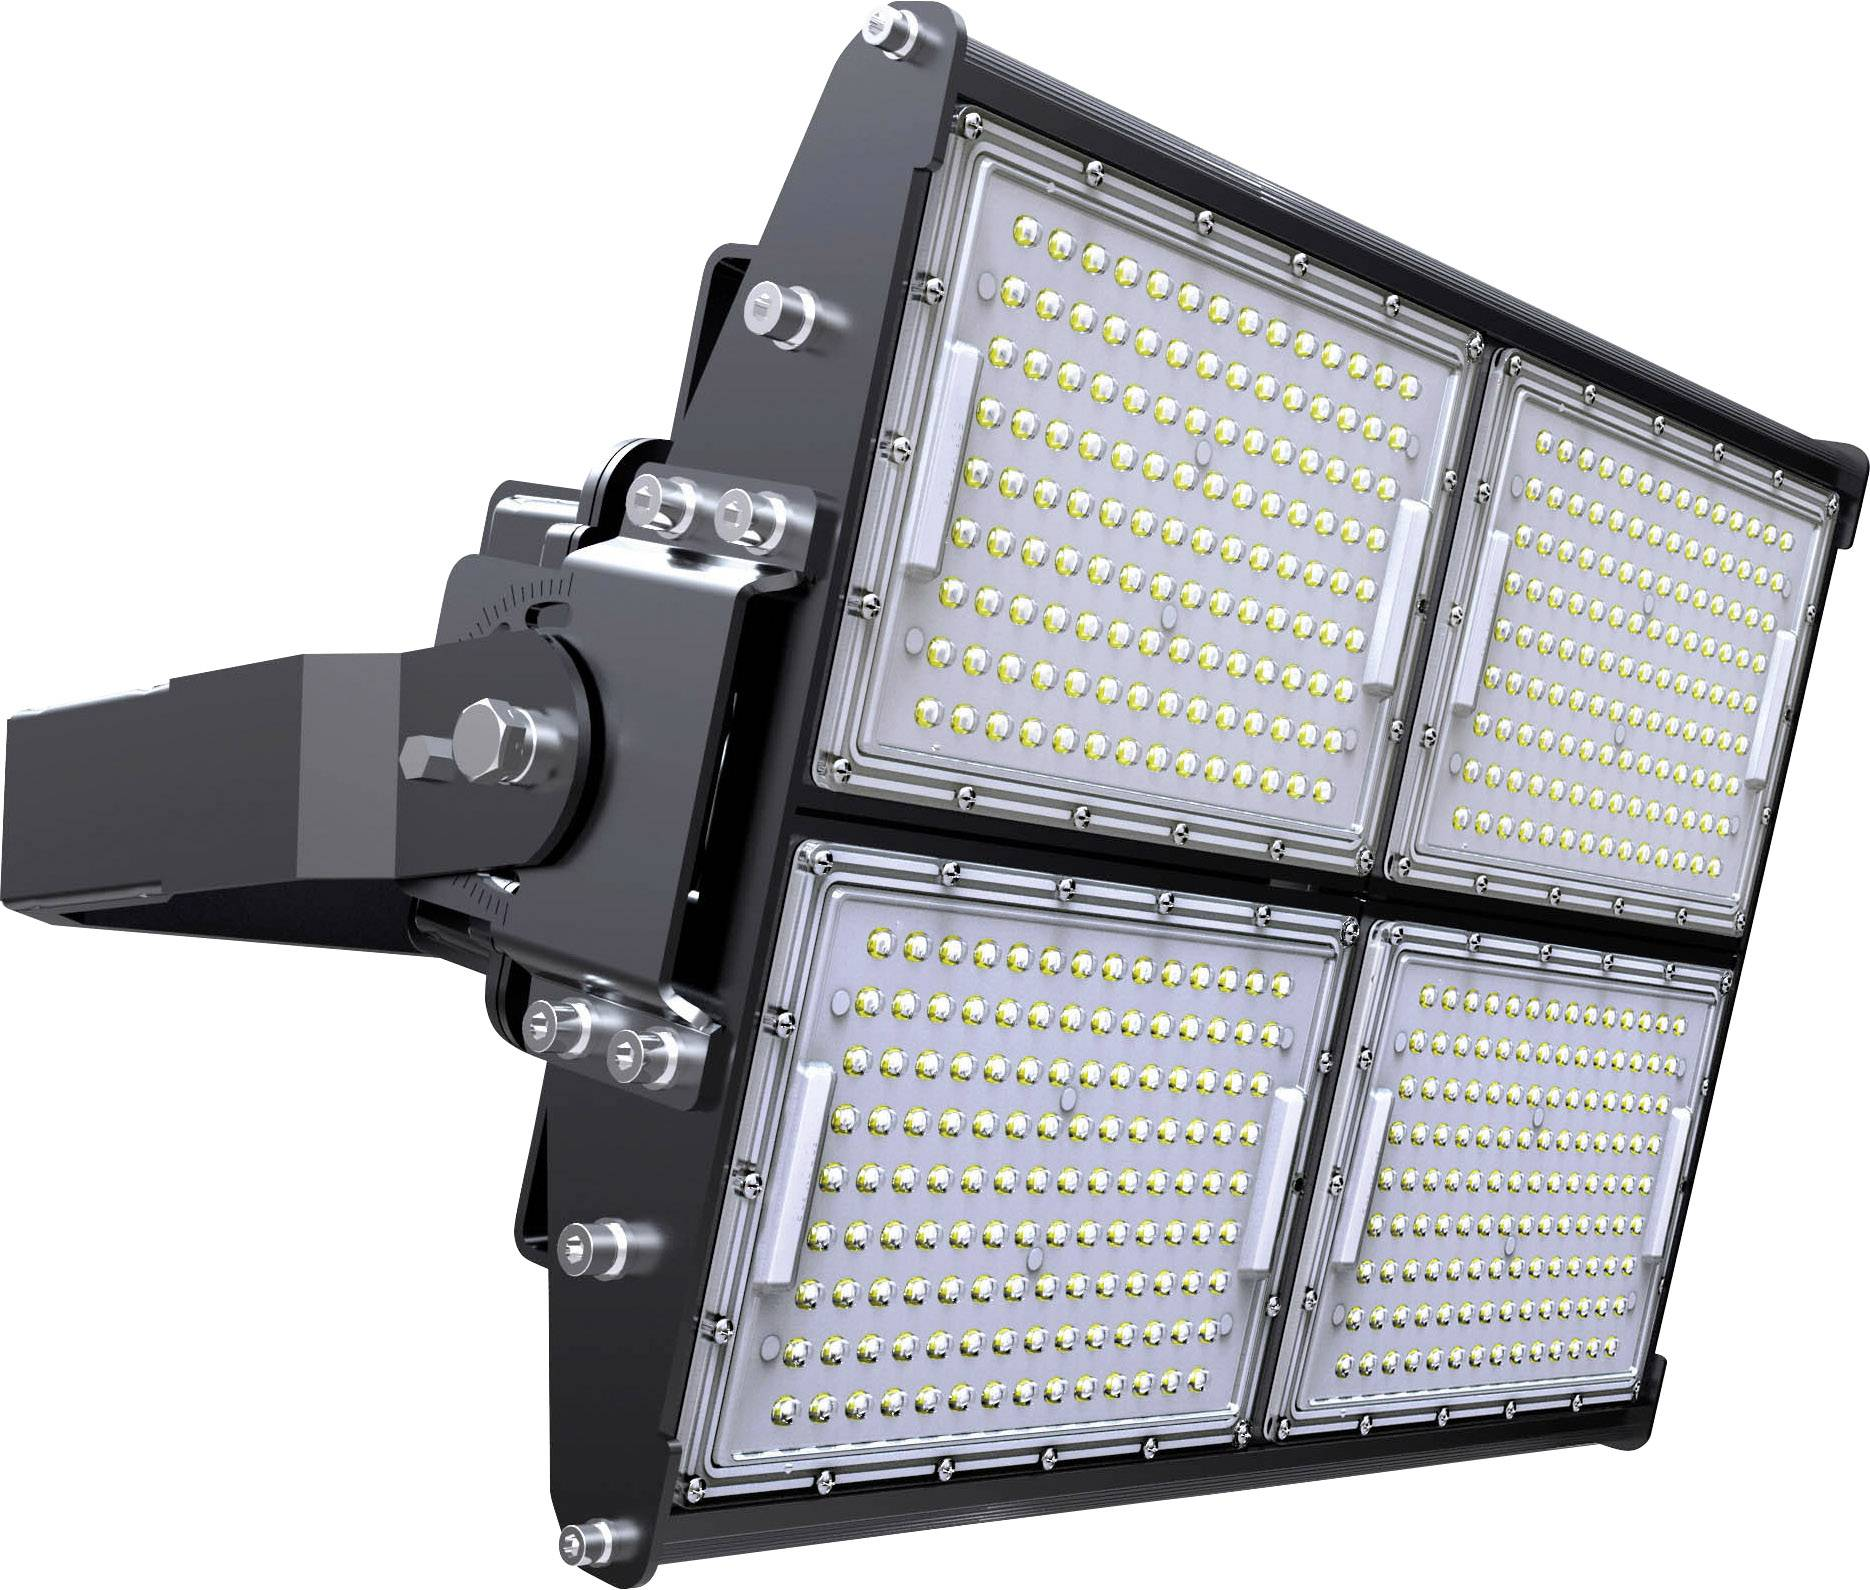 Projecteur Led Exterieur Forum Projecteur Led Exterieur Comparatif